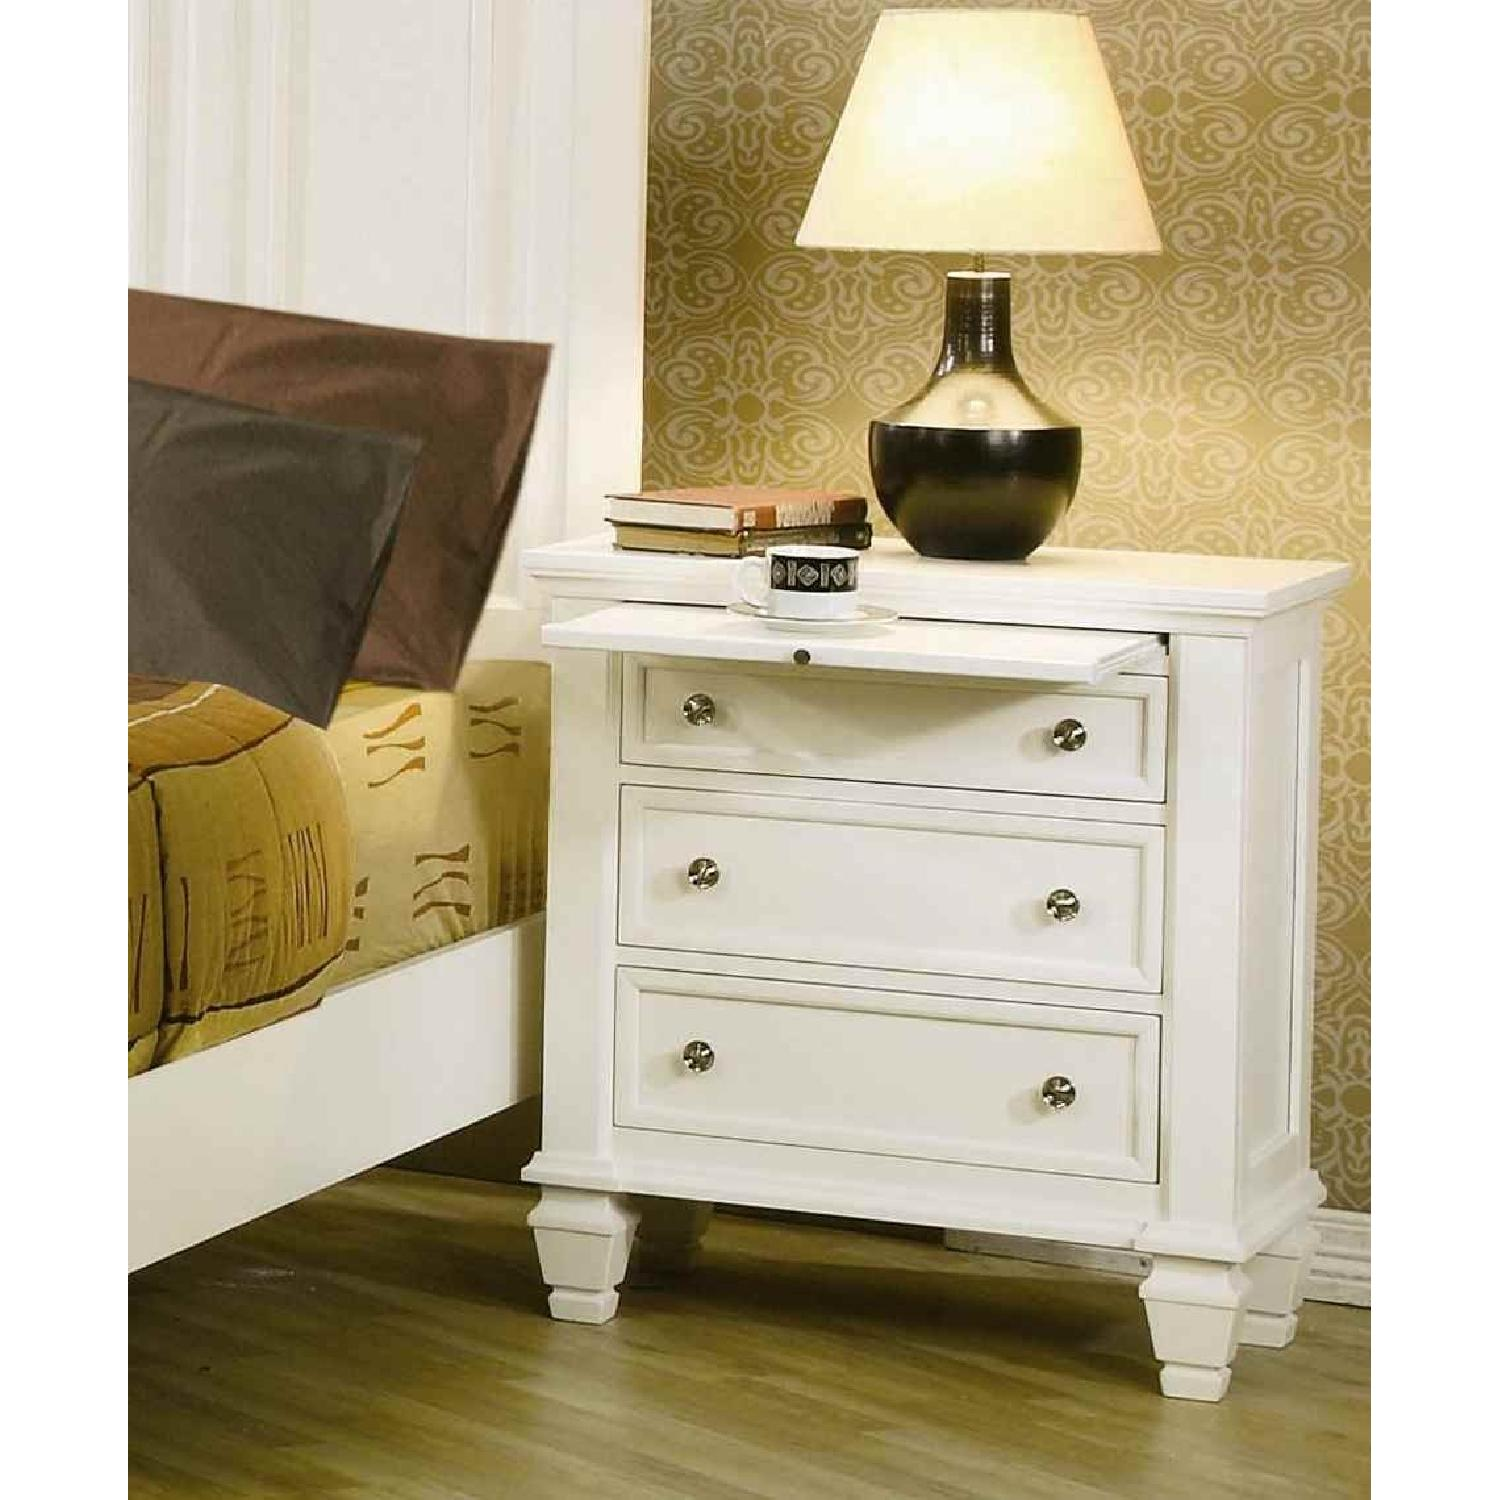 Large 3-Drawer Nightstand w/ Pull-Out Tray in White Finish - image-2